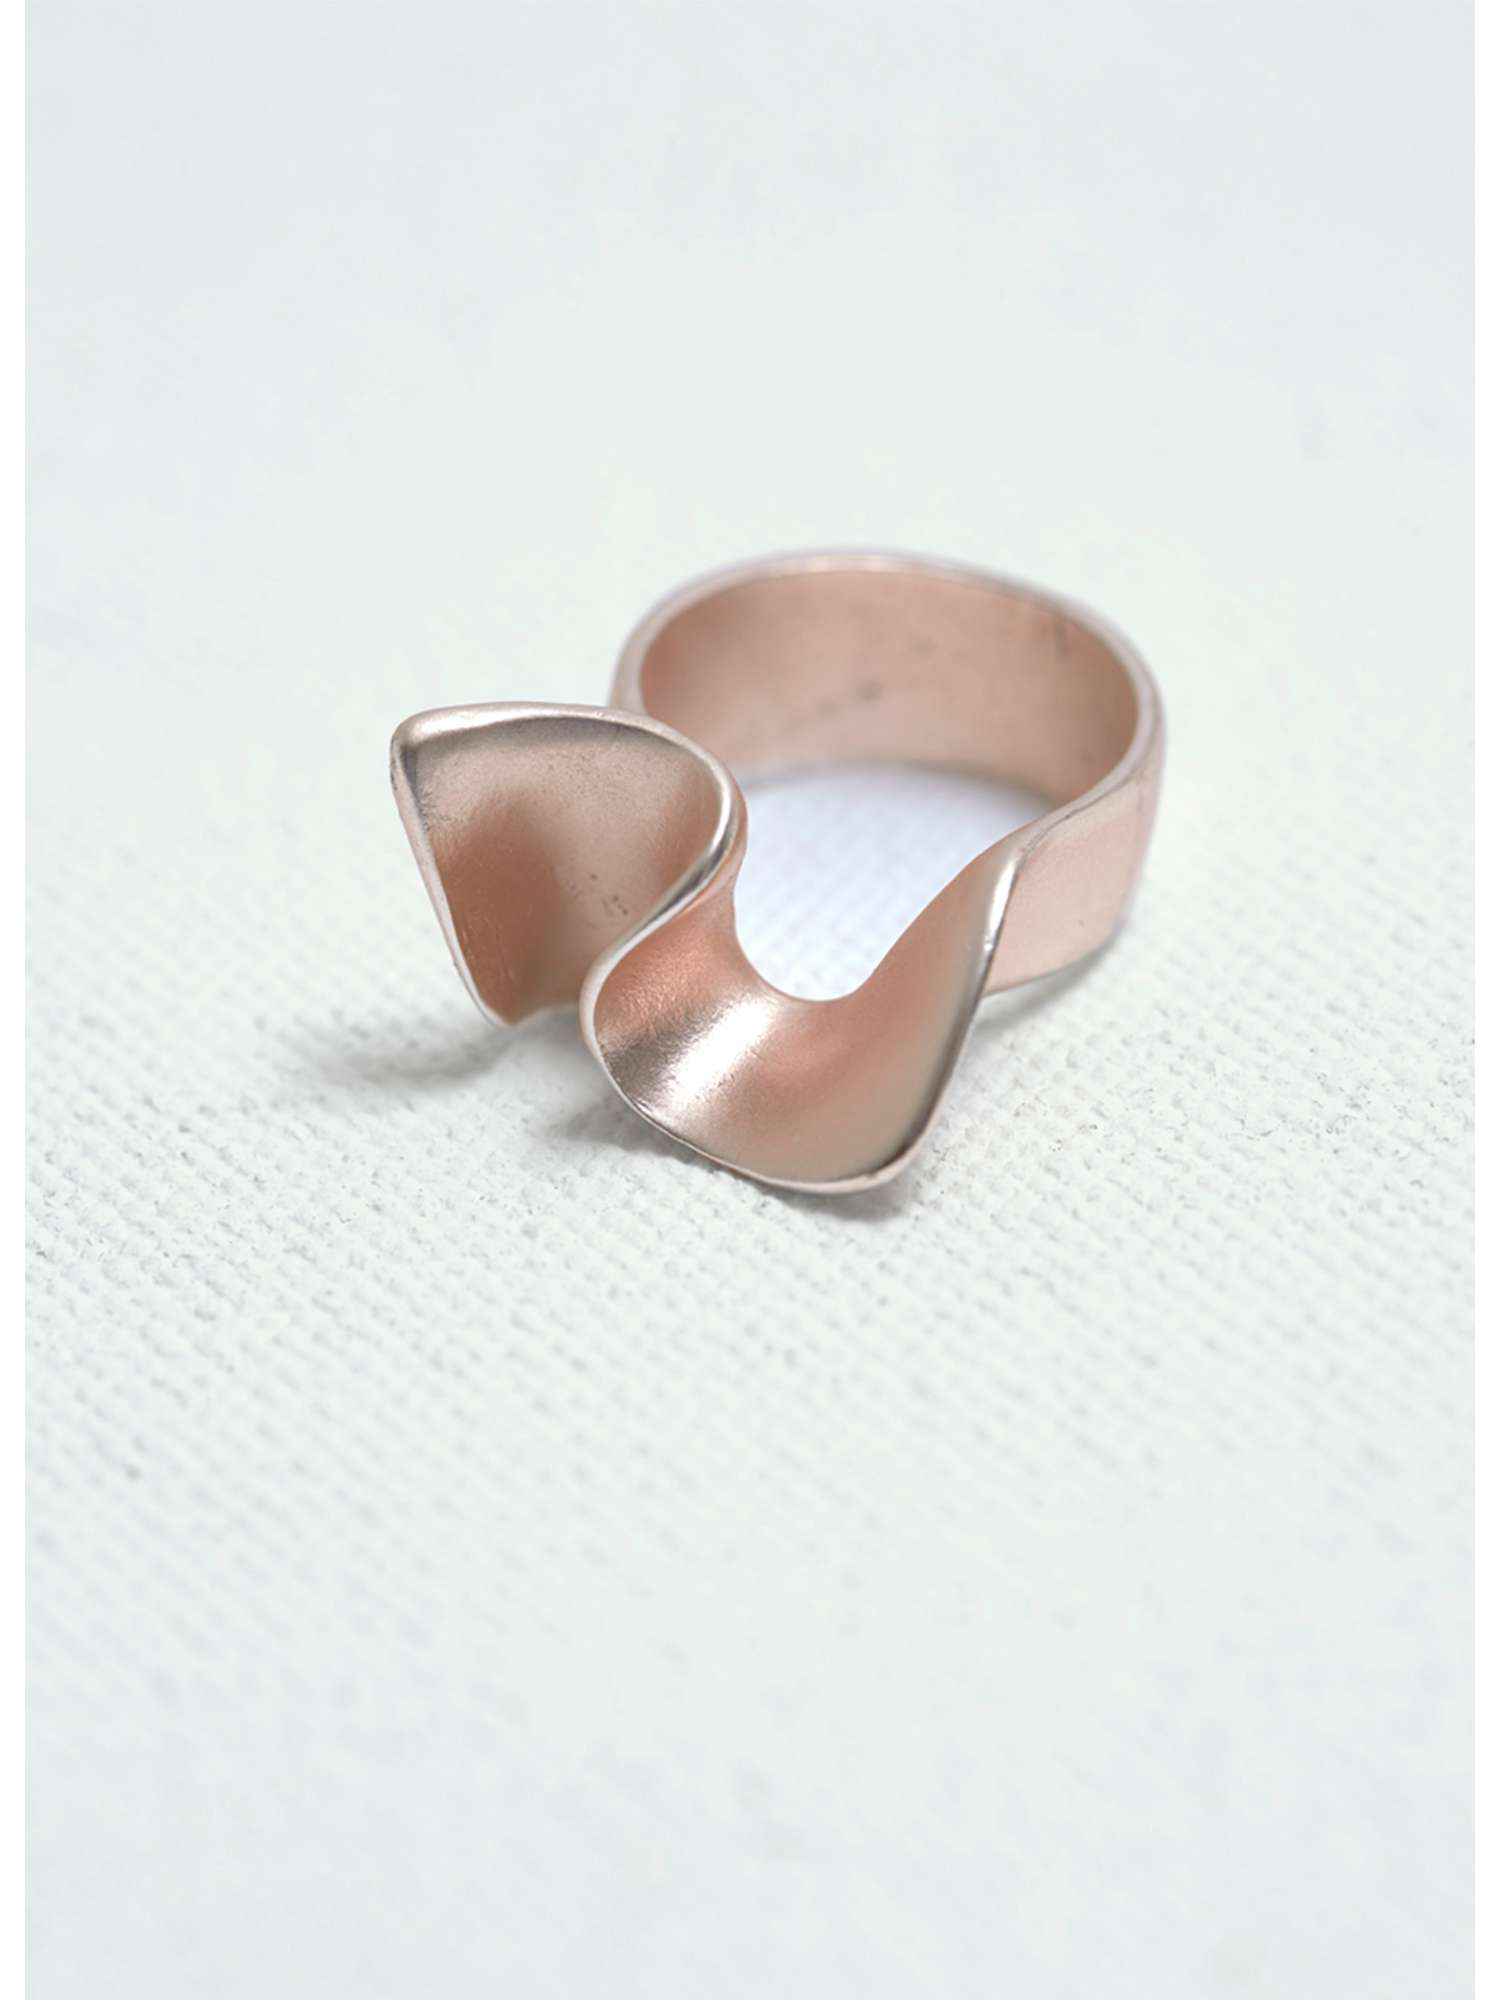 Mint Velvet Rose Gold Abstract Twist Ring £17.60